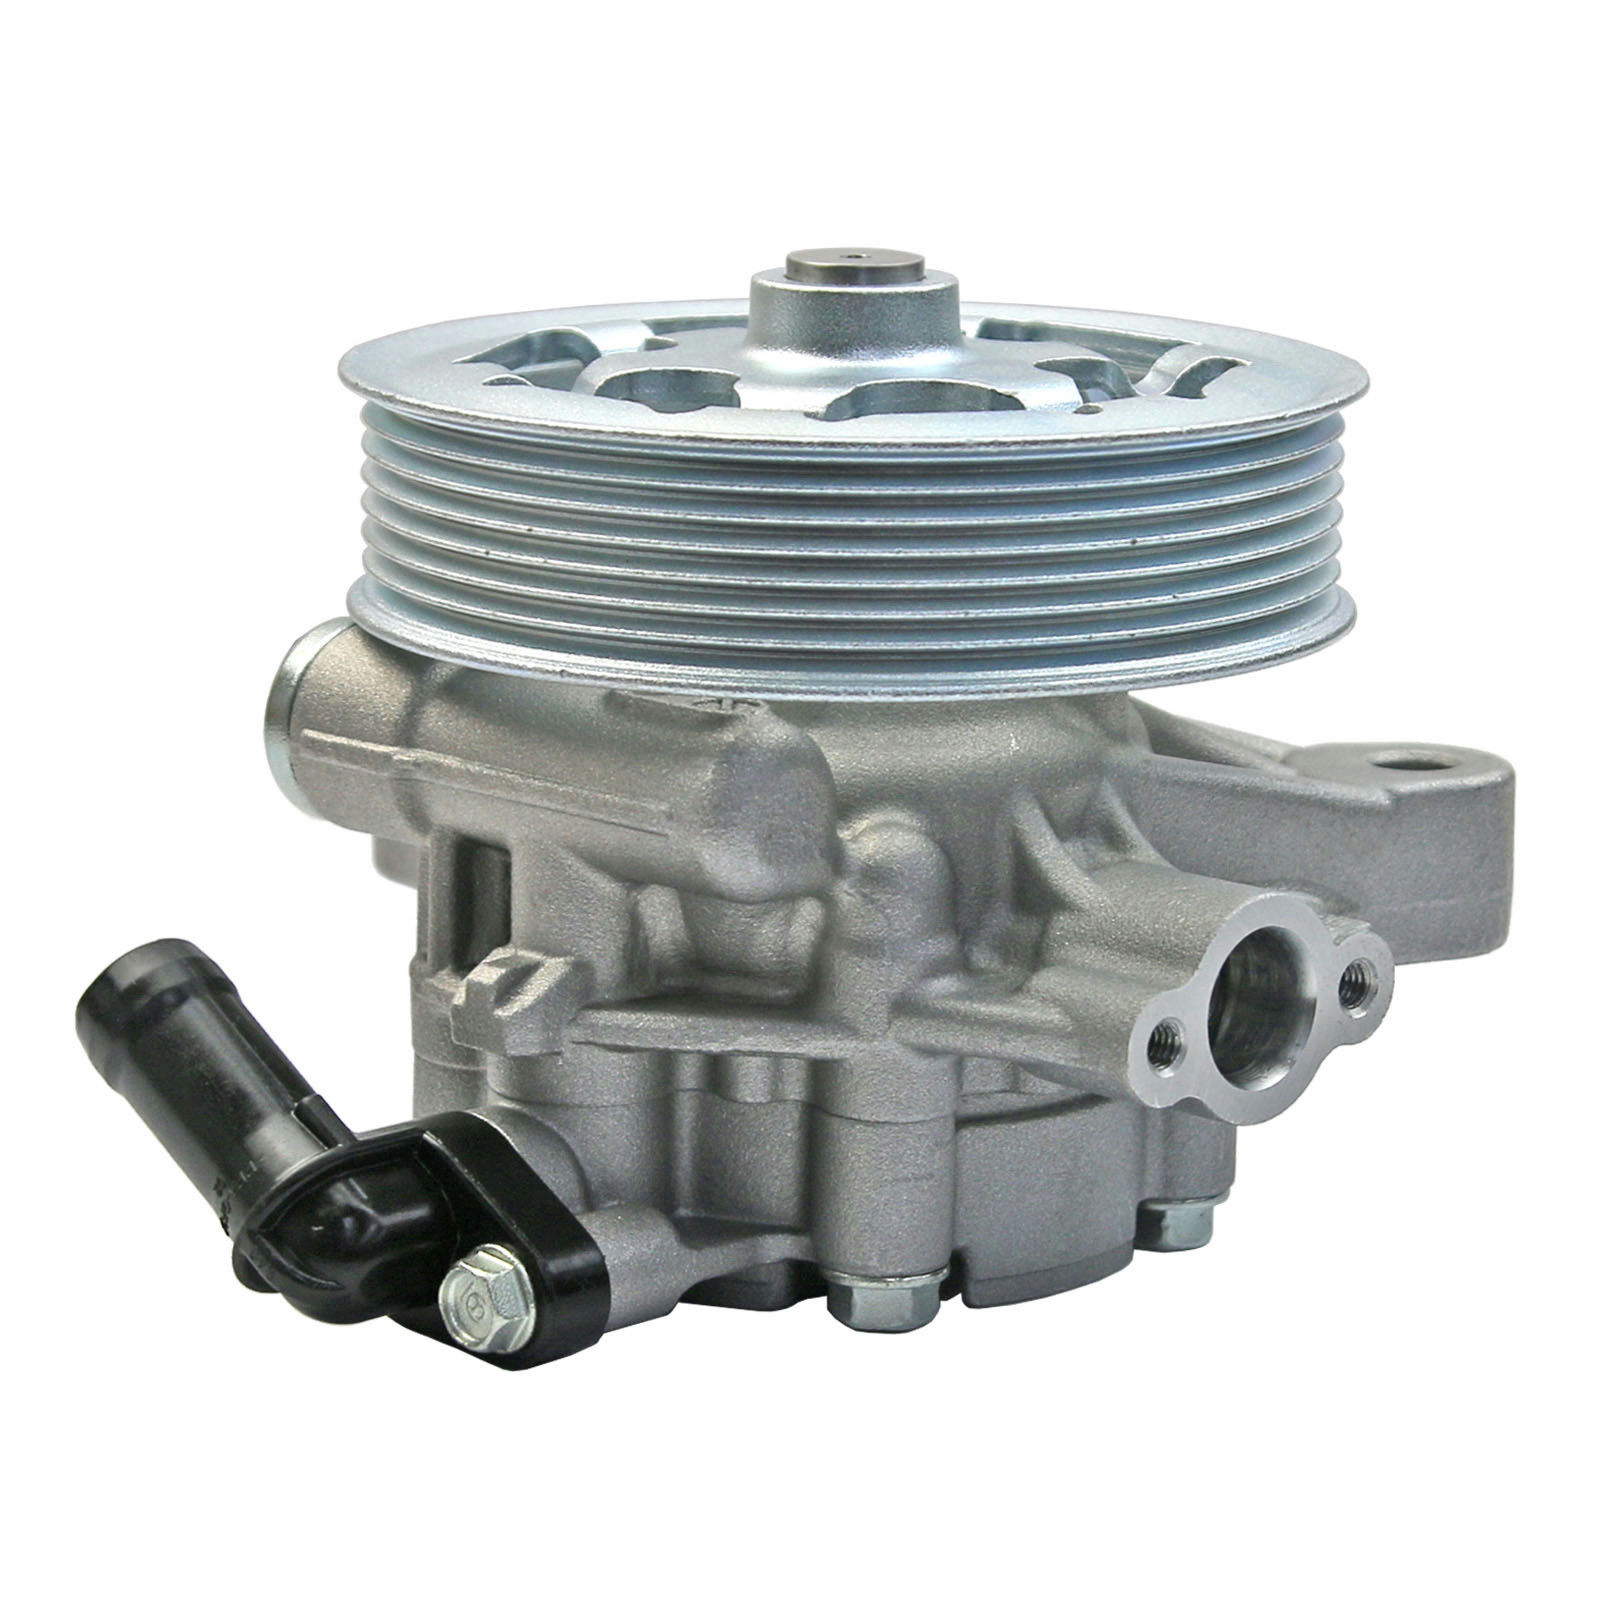 Front Power Steering Pump For <font><b>Honda</b></font> <font><b>Accord</b></font> CP2 Sedan 2008 <font><b>2009</b></font> 2010 2011 2012 2.4L 4 CYL 56110-R40-A01 56110R40A01 56110RAAA03 image